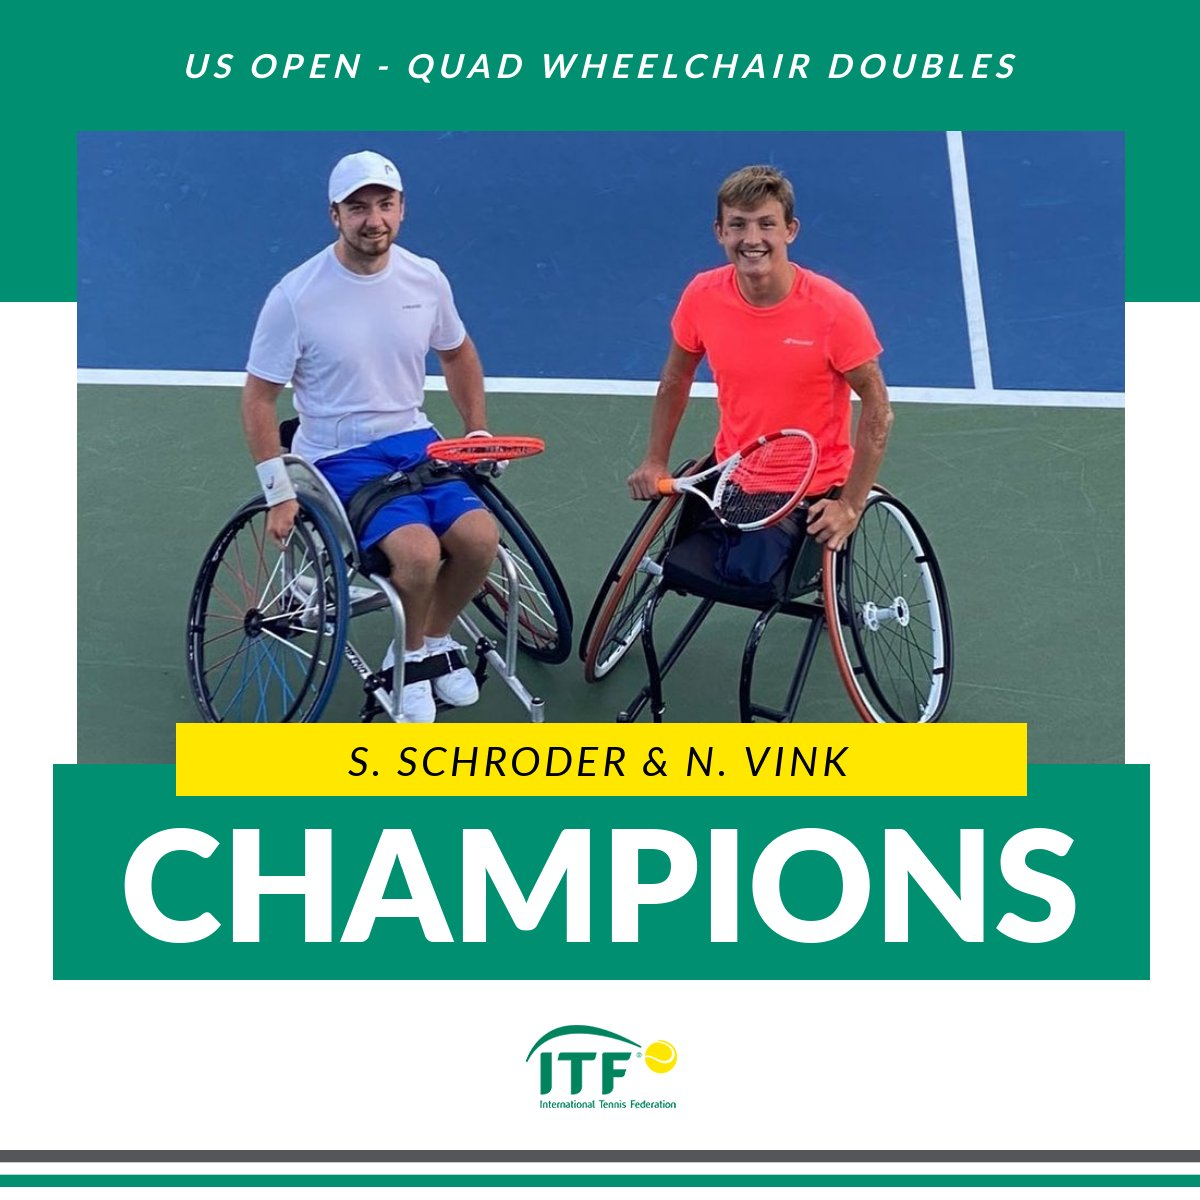 🇳🇱🇳🇱 @SamWCTennis & Niels Vink win the #USOpen Quad Wheelchair Doubles title after defeating Dylan Alcott & Heath Davidson 6-3 6-2! 👏